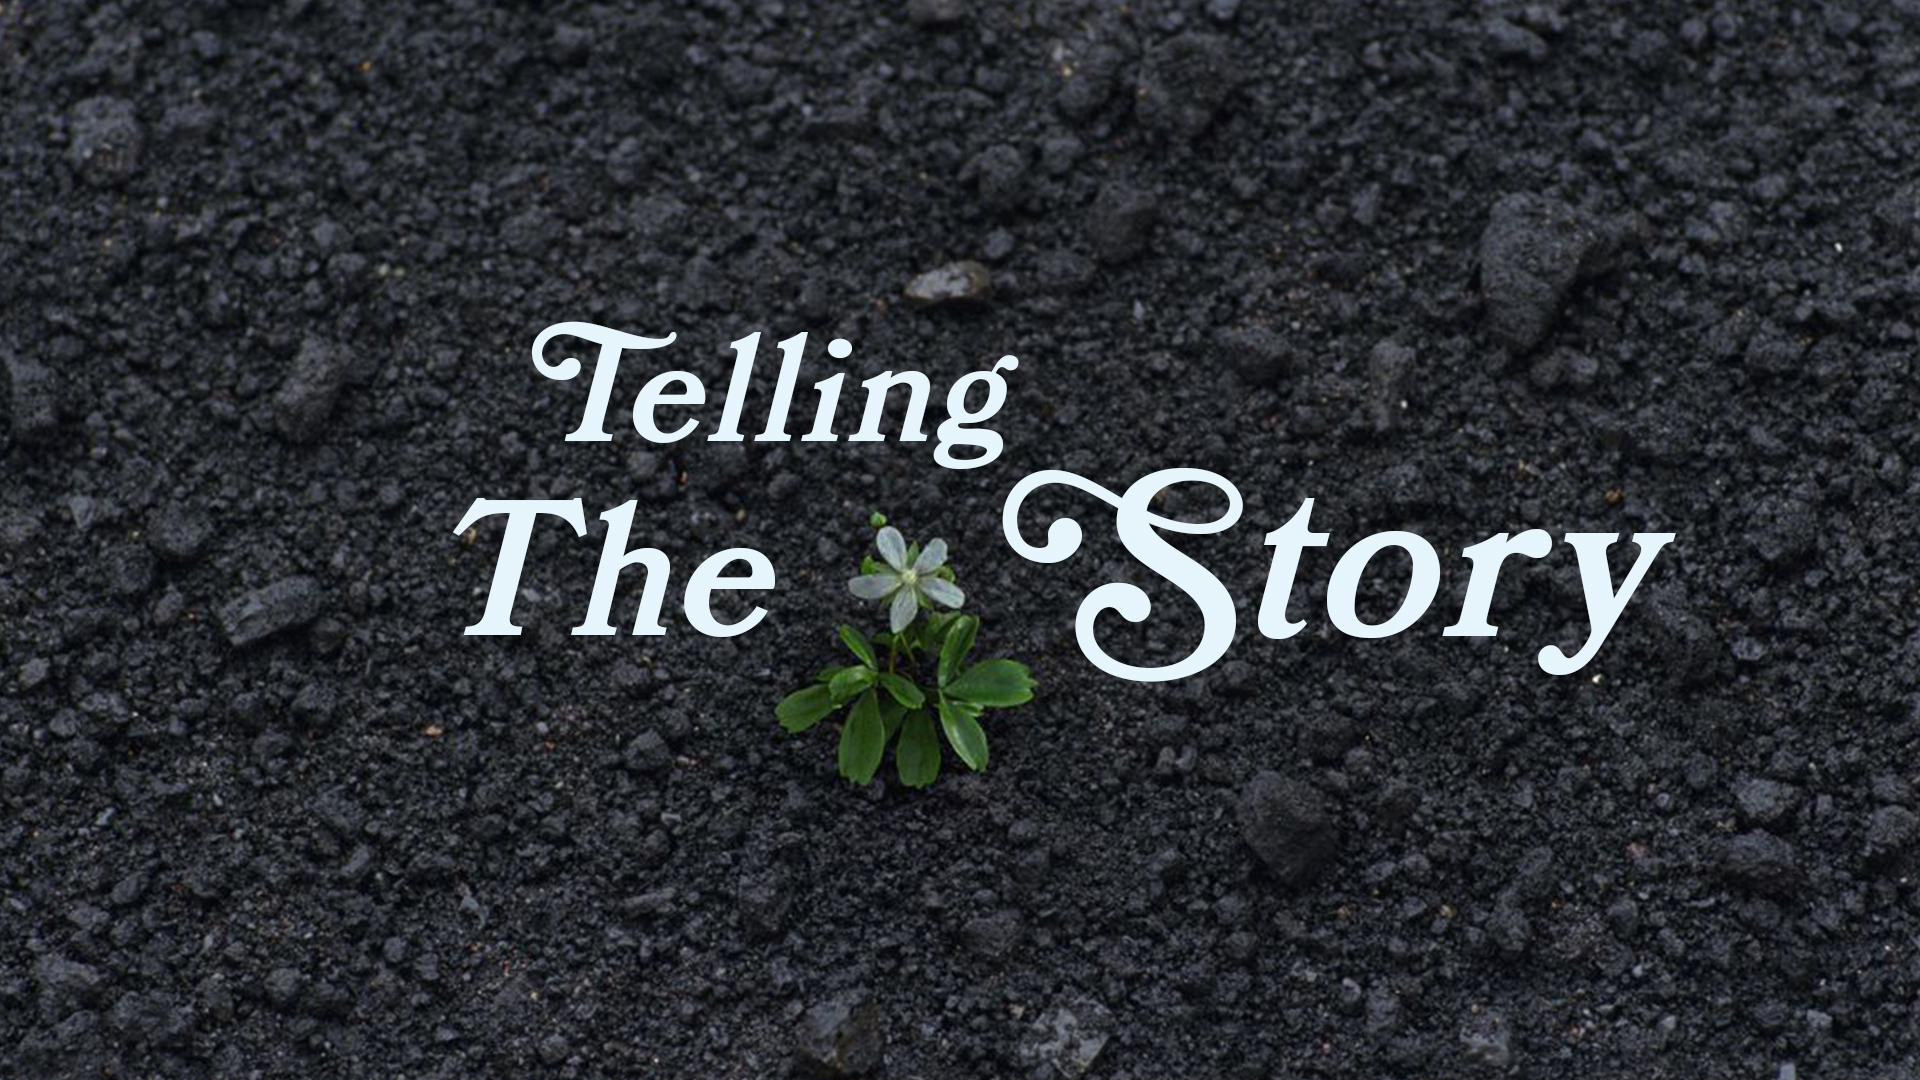 telling the story title image.jpg